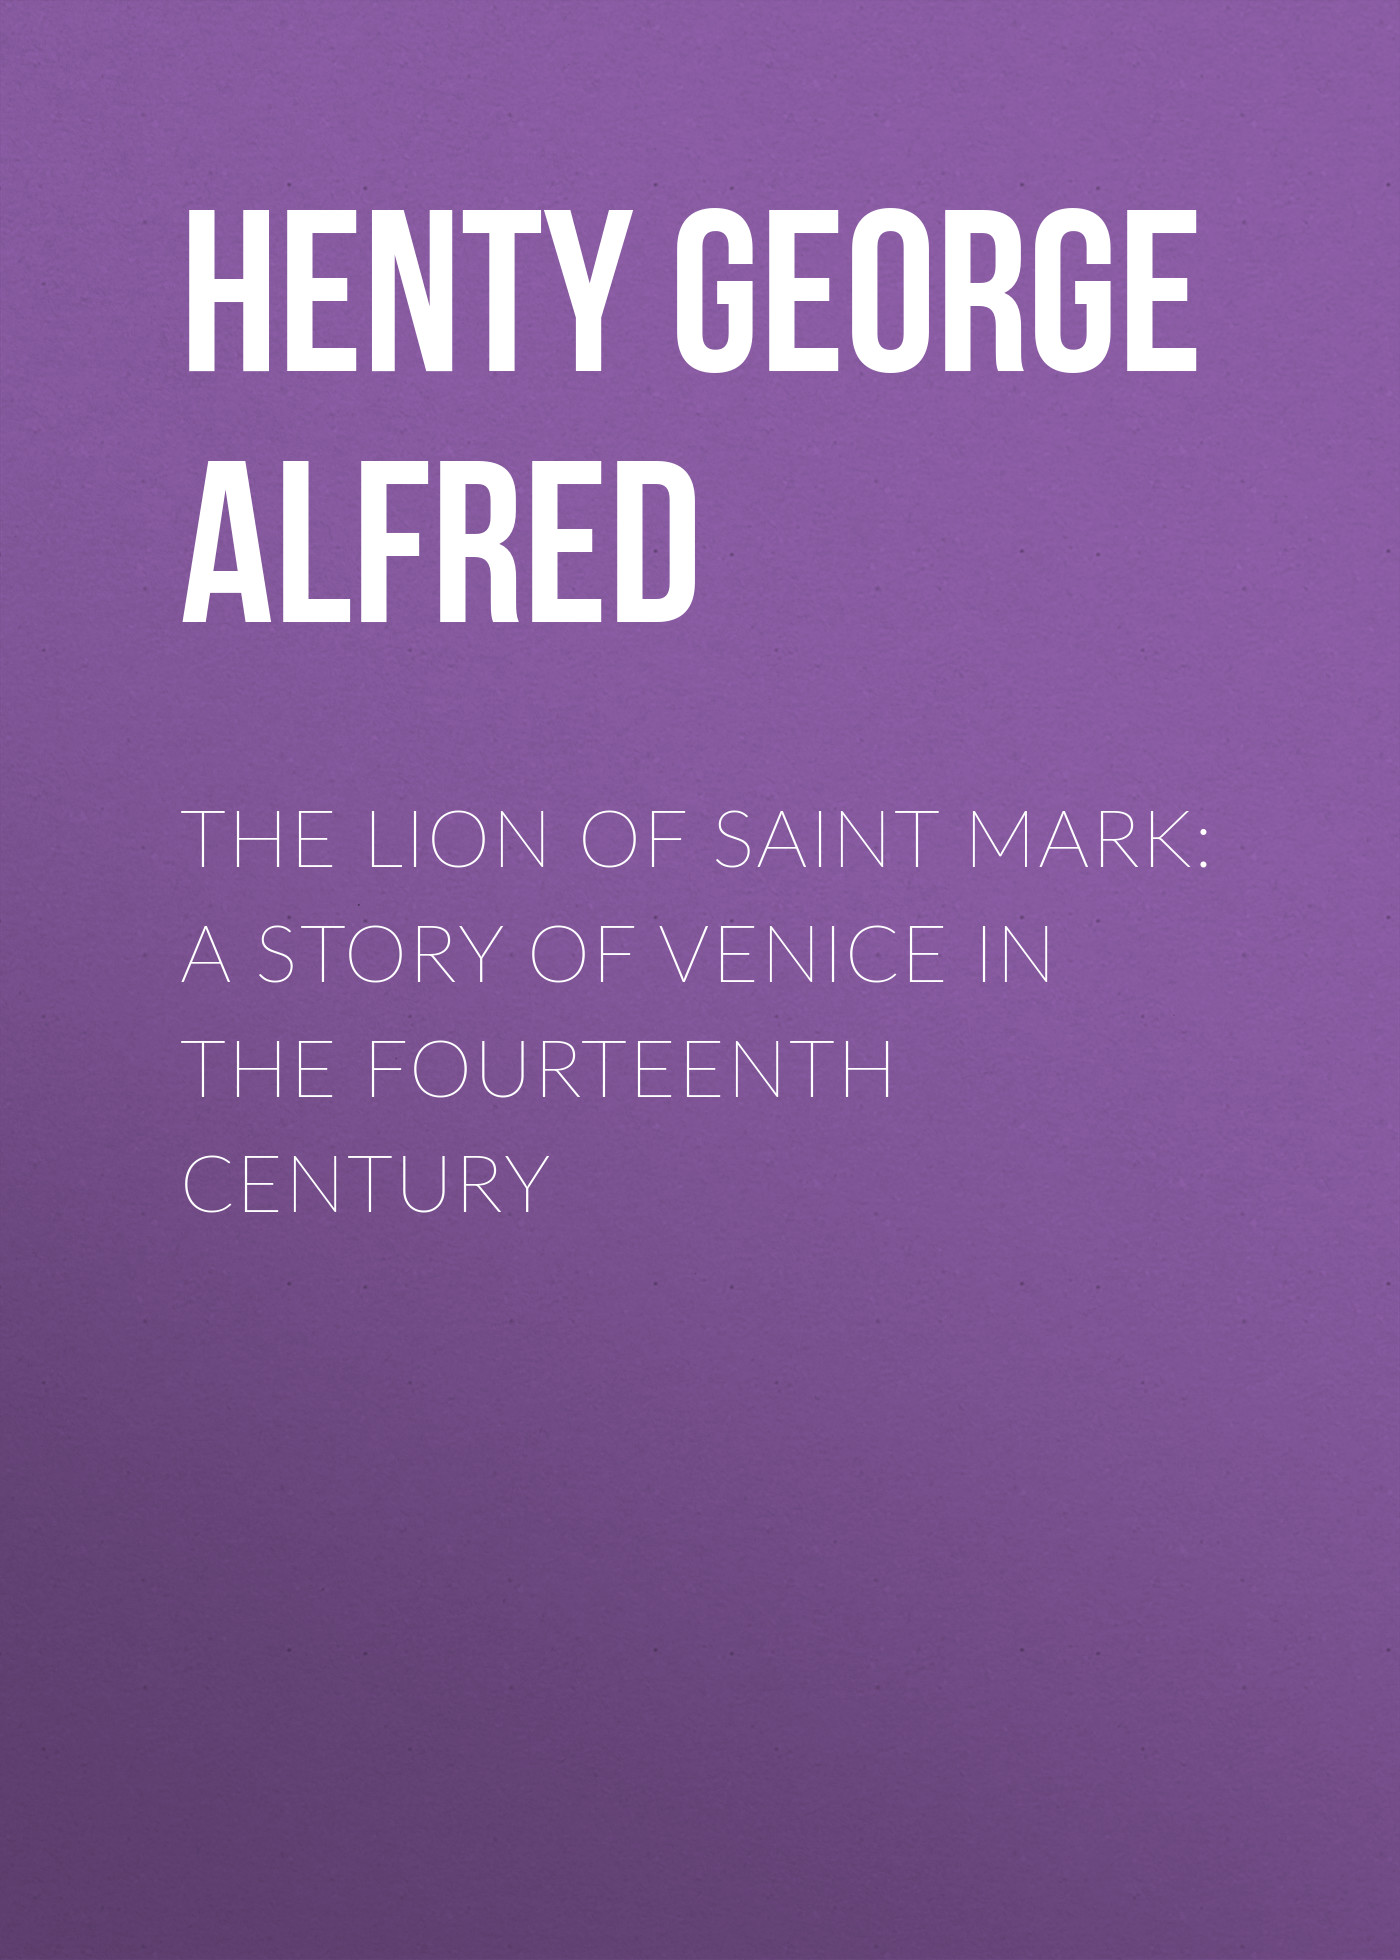 Henty George Alfred The Lion of Saint Mark: A Story of Venice in the Fourteenth Century macbeth in venice